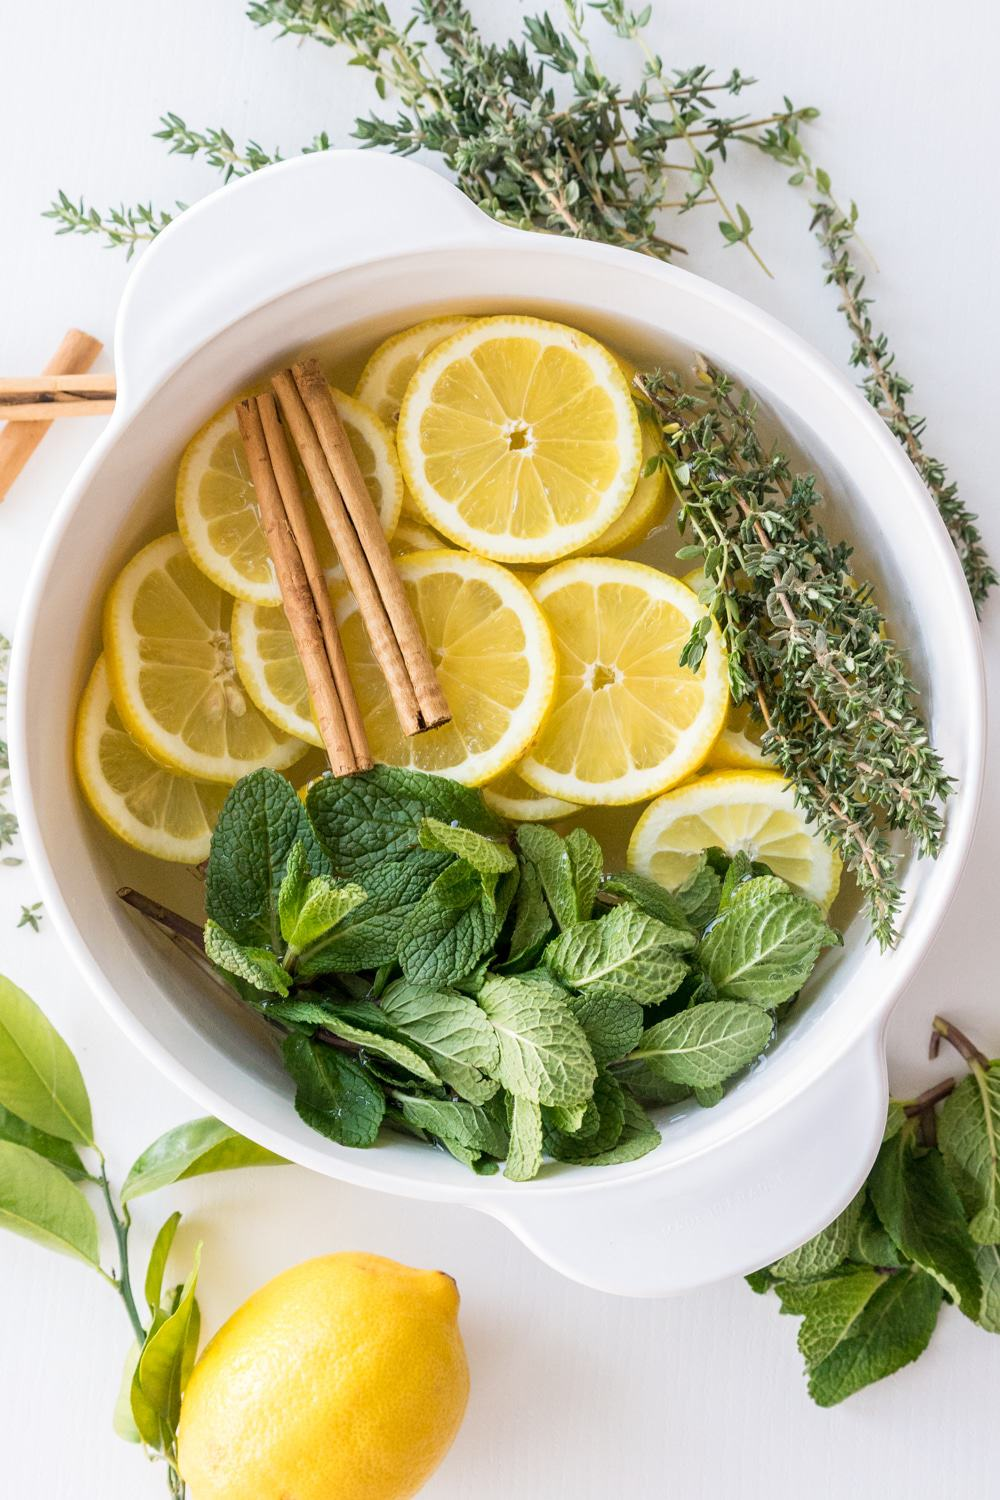 Lemon, Cinnamon, Mint And ThymeStove Top Potpourri | These Stove Top Potpourri ideas create an amazing natural homemade scent that will bring the smell of spring into your home. Such easy recipes that you can leave on your stove all day long simmering. Each one will fill your home with a fresh aroma as you do your spring cleaning!